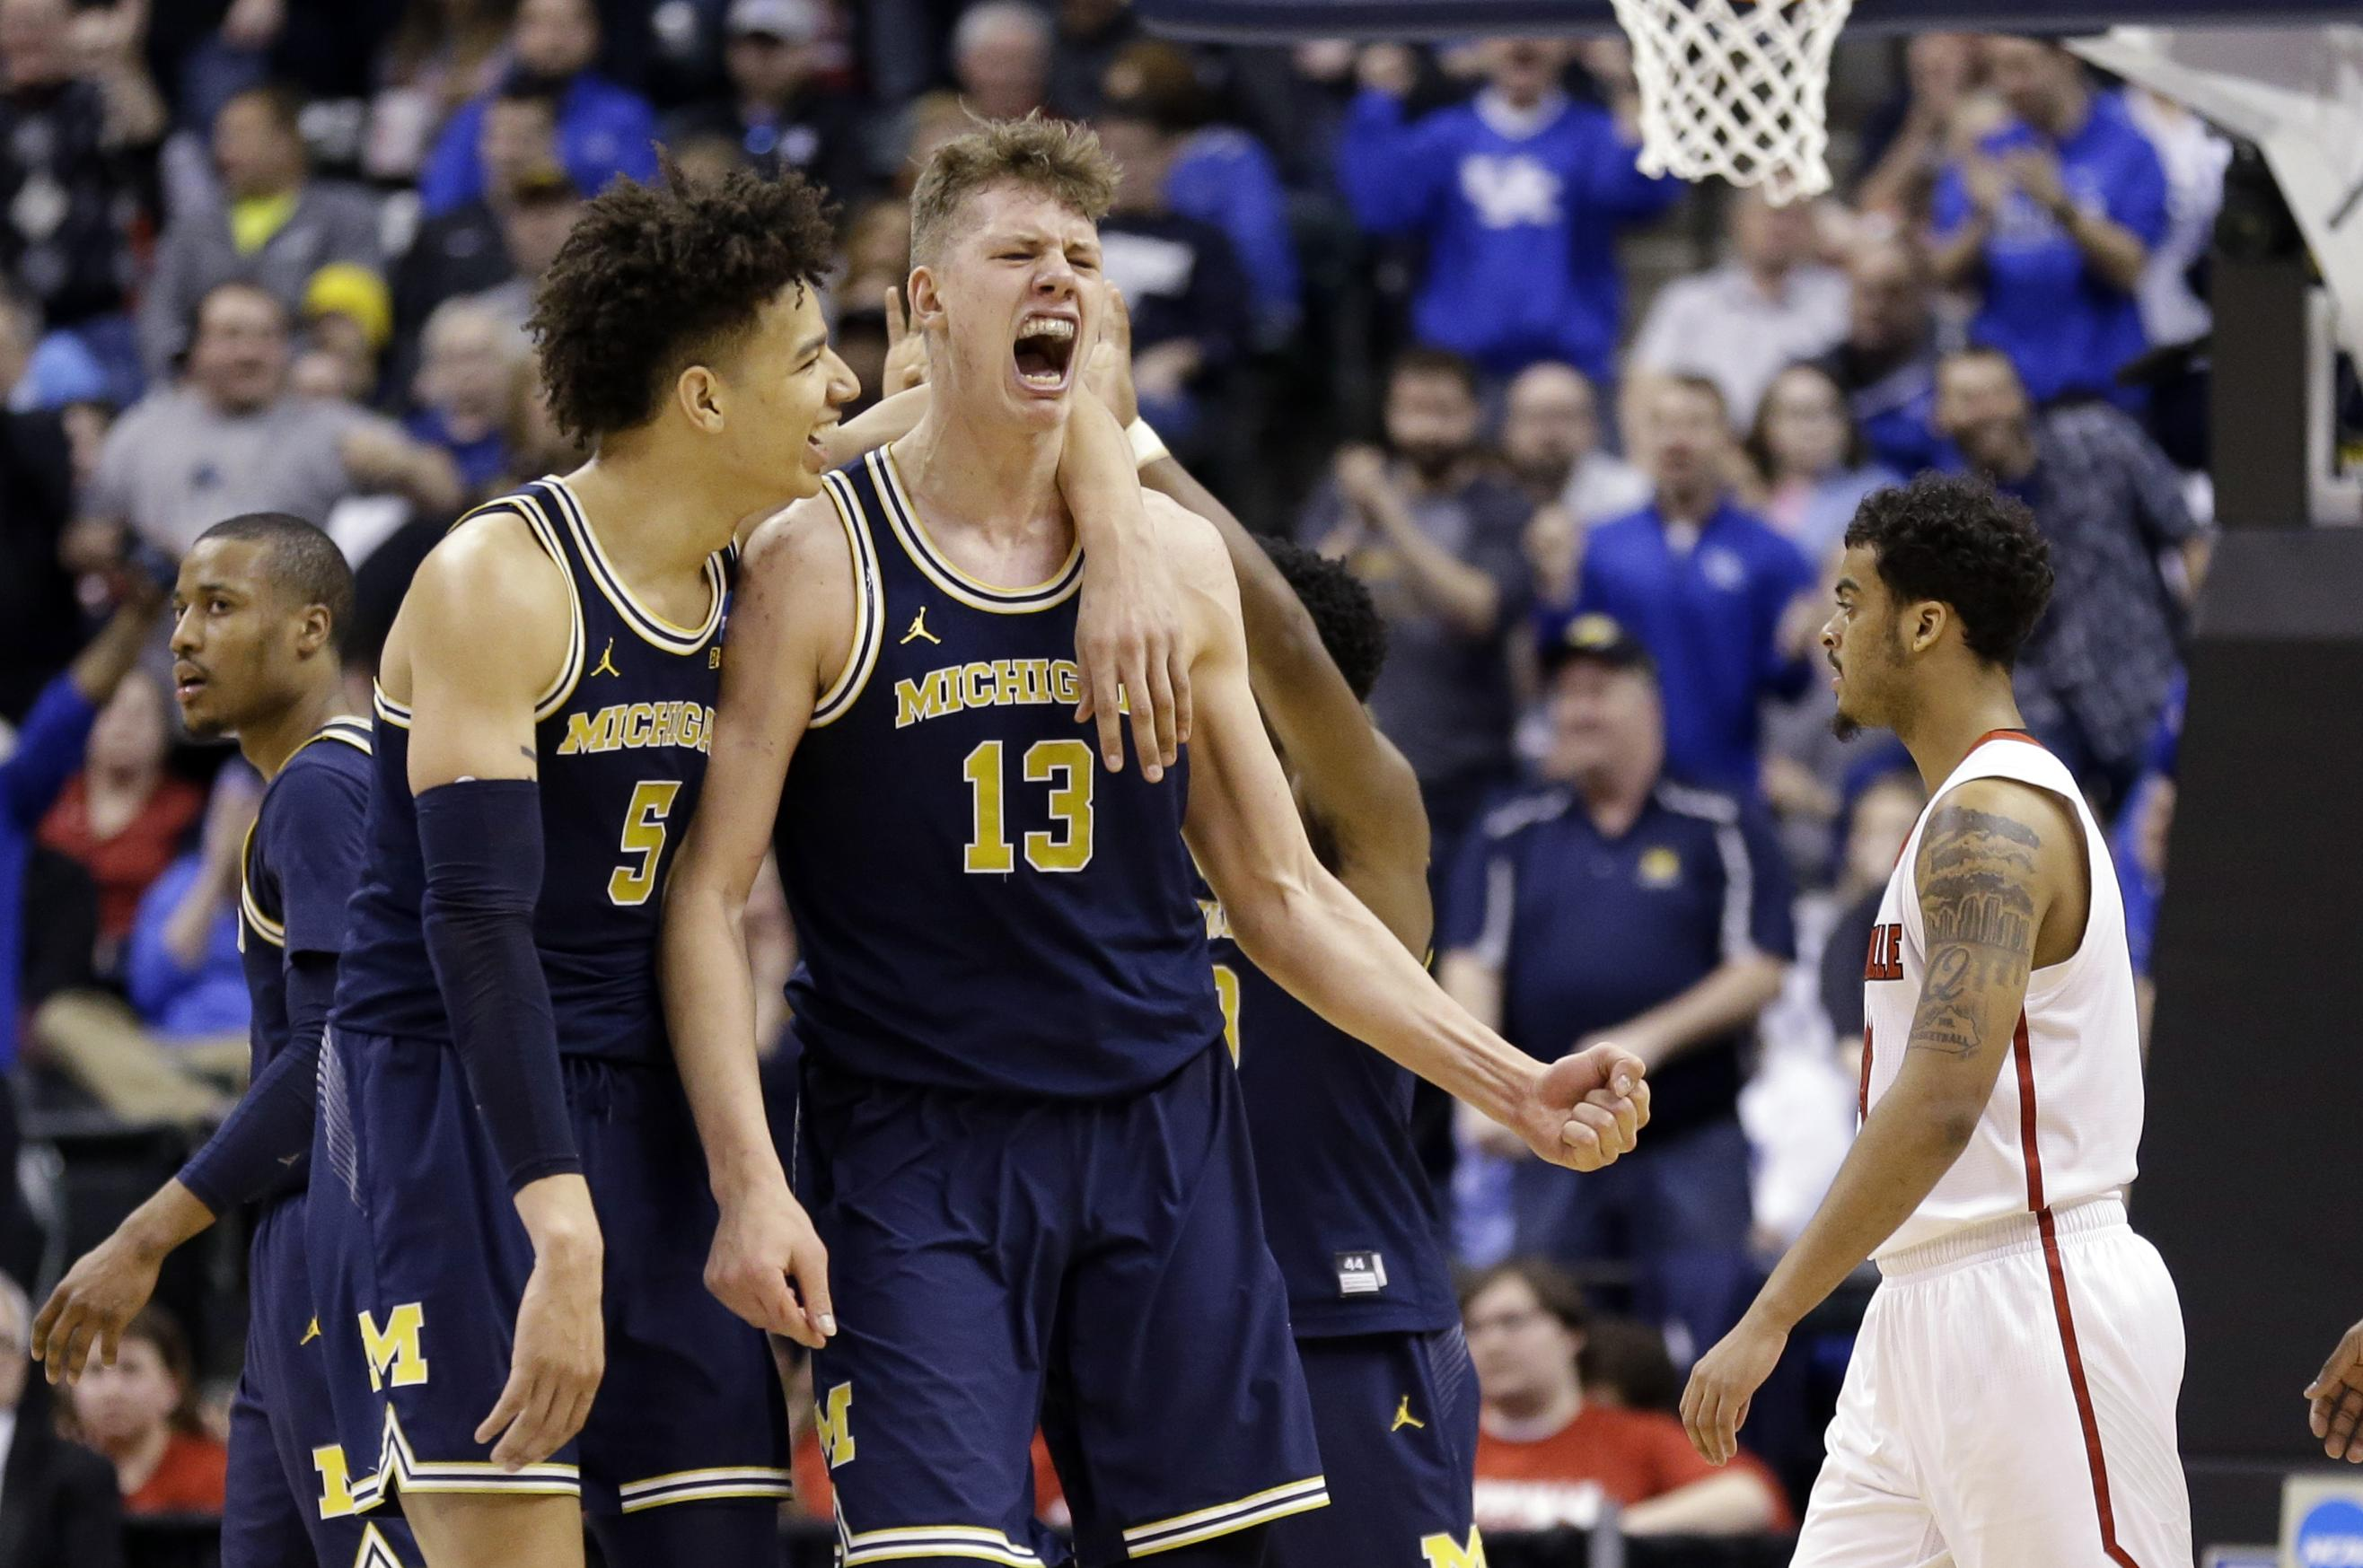 af66cb141ca Michigan forwards D.J. Wilson (5) and Moritz Wagner (13) celebrate during  the